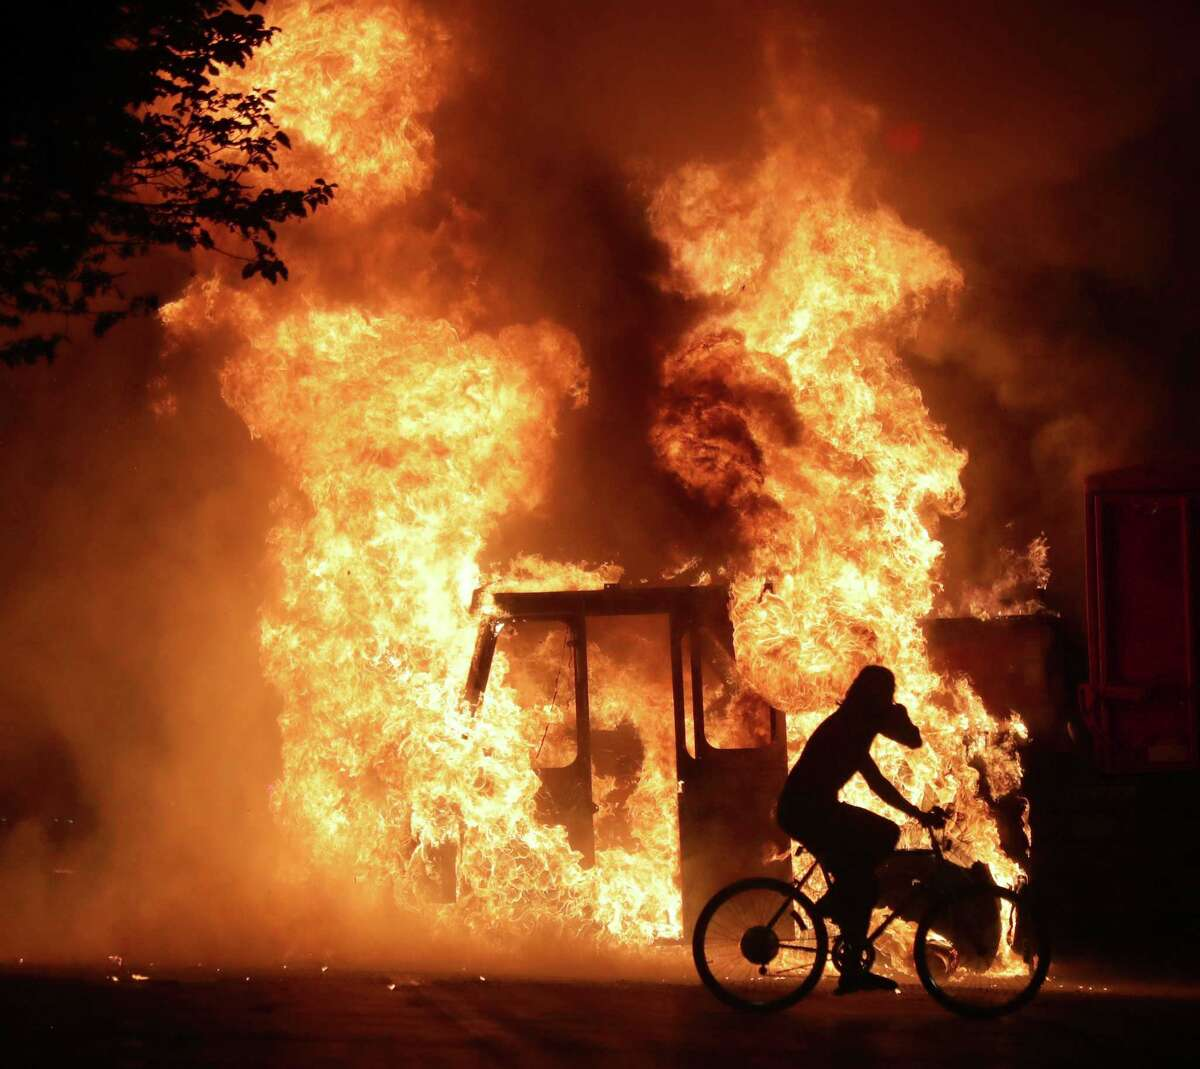 A man on a bike rides past a city truck on fire outside the Kenosha County Courthouse in Kenosha, Wis., on Sunday, Aug. 23, 2020. Kenosha police shot a man Sunday evening, setting off unrest in the city after a video appeared to show the officer firing several shots at close range into the man's back. (Mike De Sisti/Milwaukee Journal-Sentinel via AP)